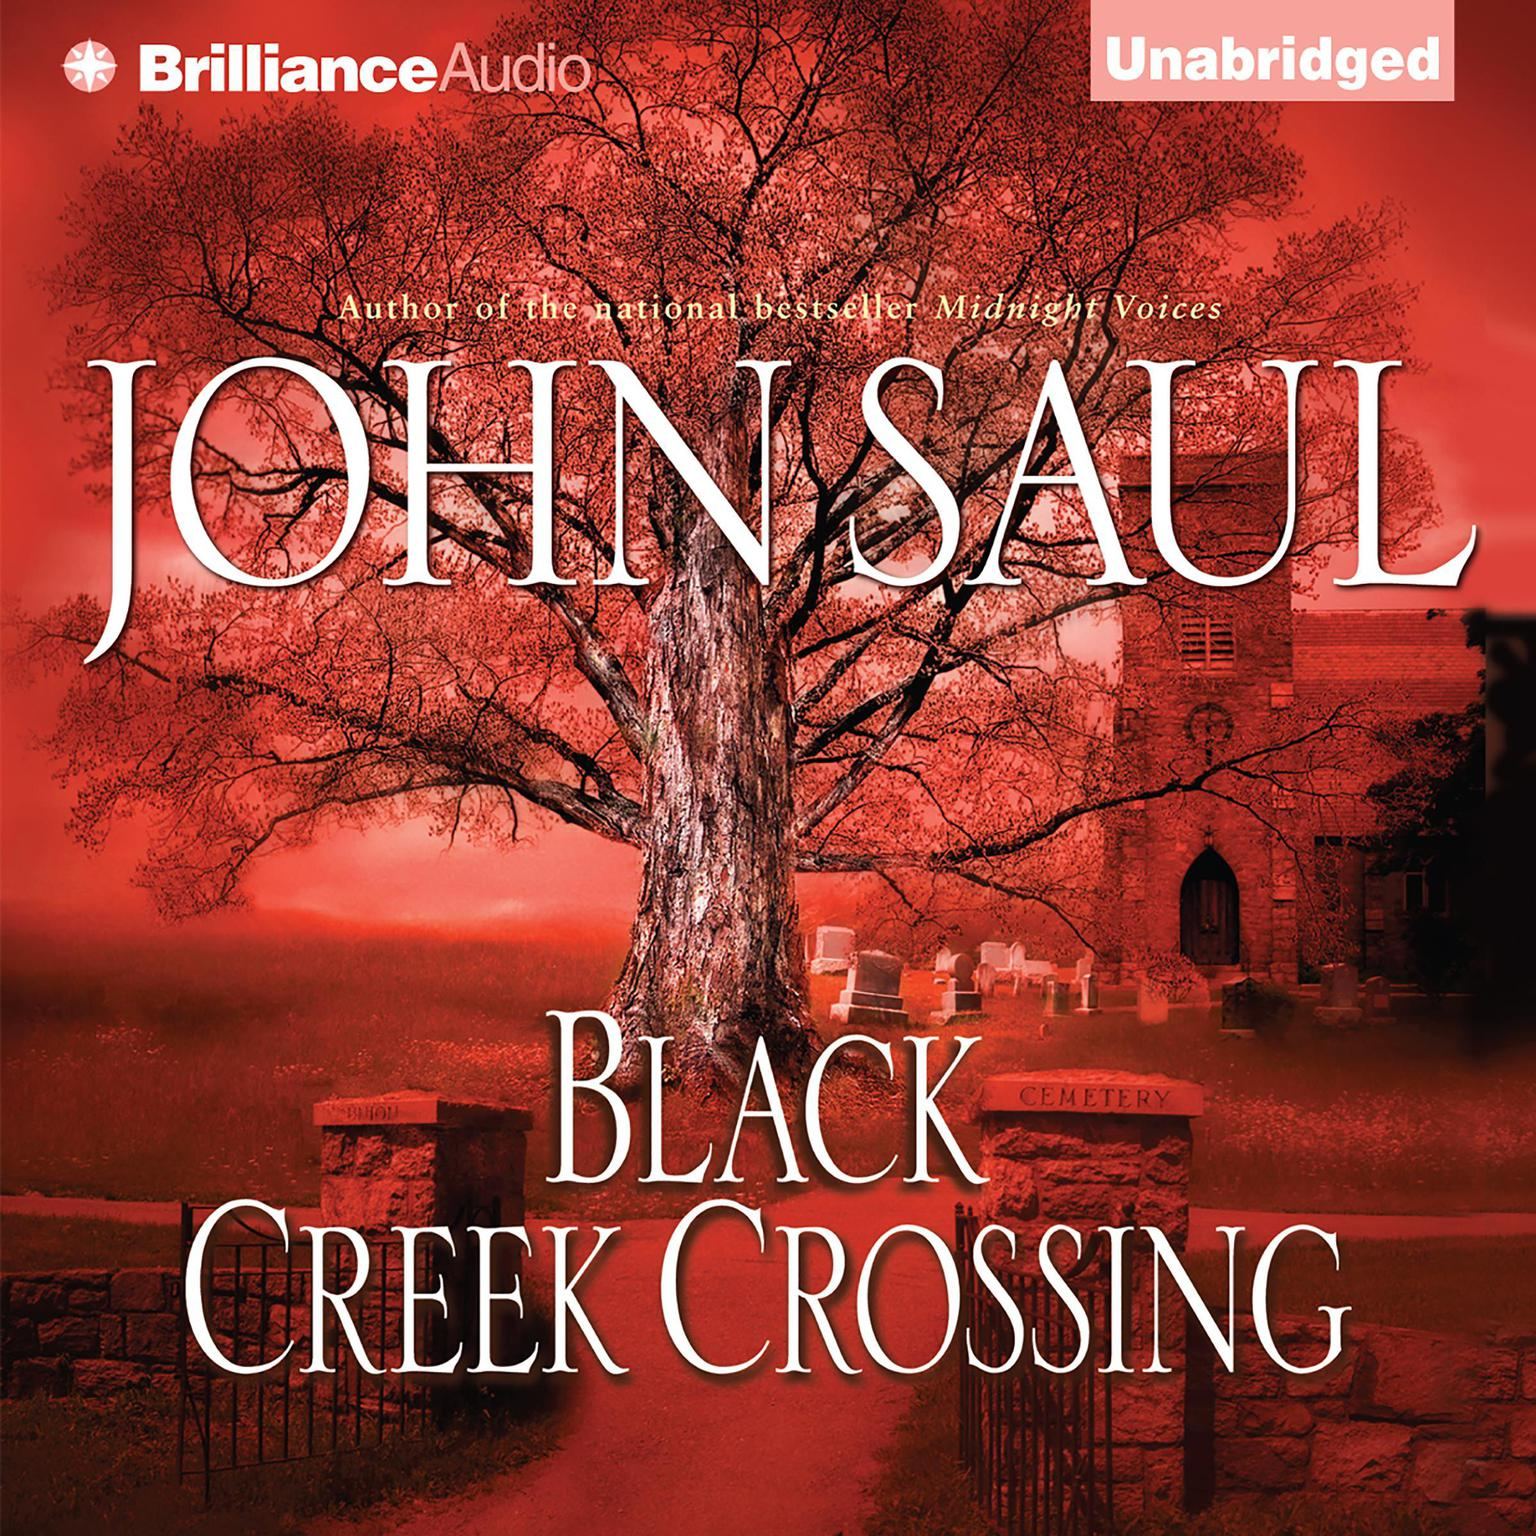 Printable Black Creek Crossing Audiobook Cover Art